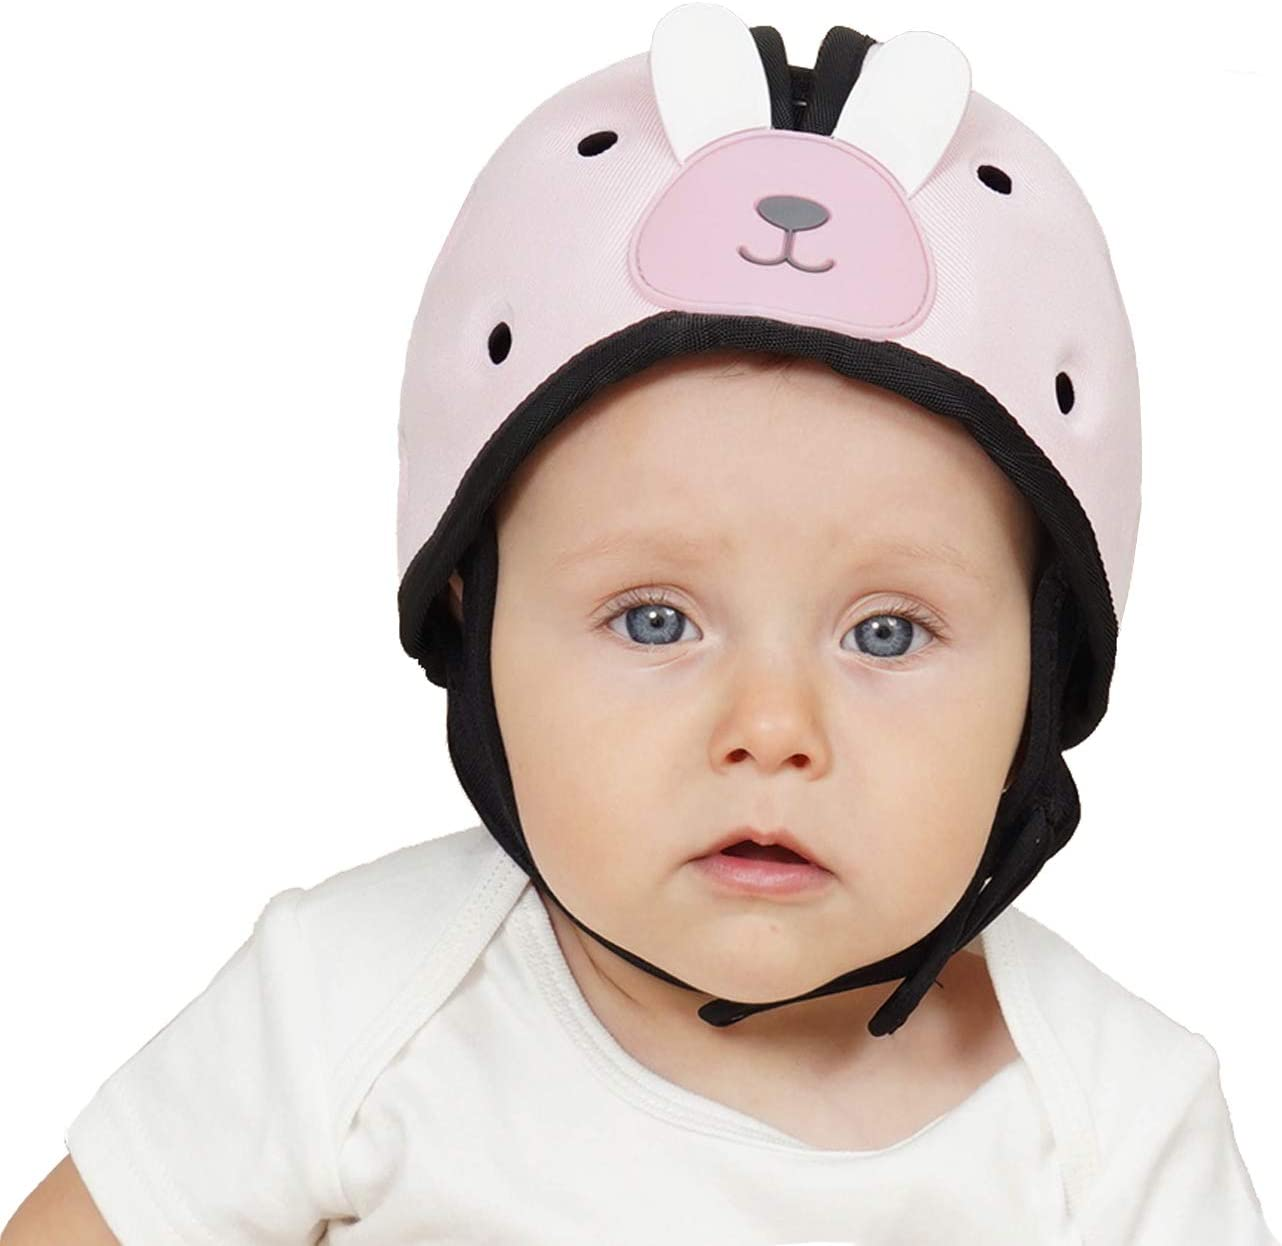 Blue Adjustable Age 6m-2y Infant Soft Helmet Safety Helmet for Toddler Orzbow Baby Head Protector